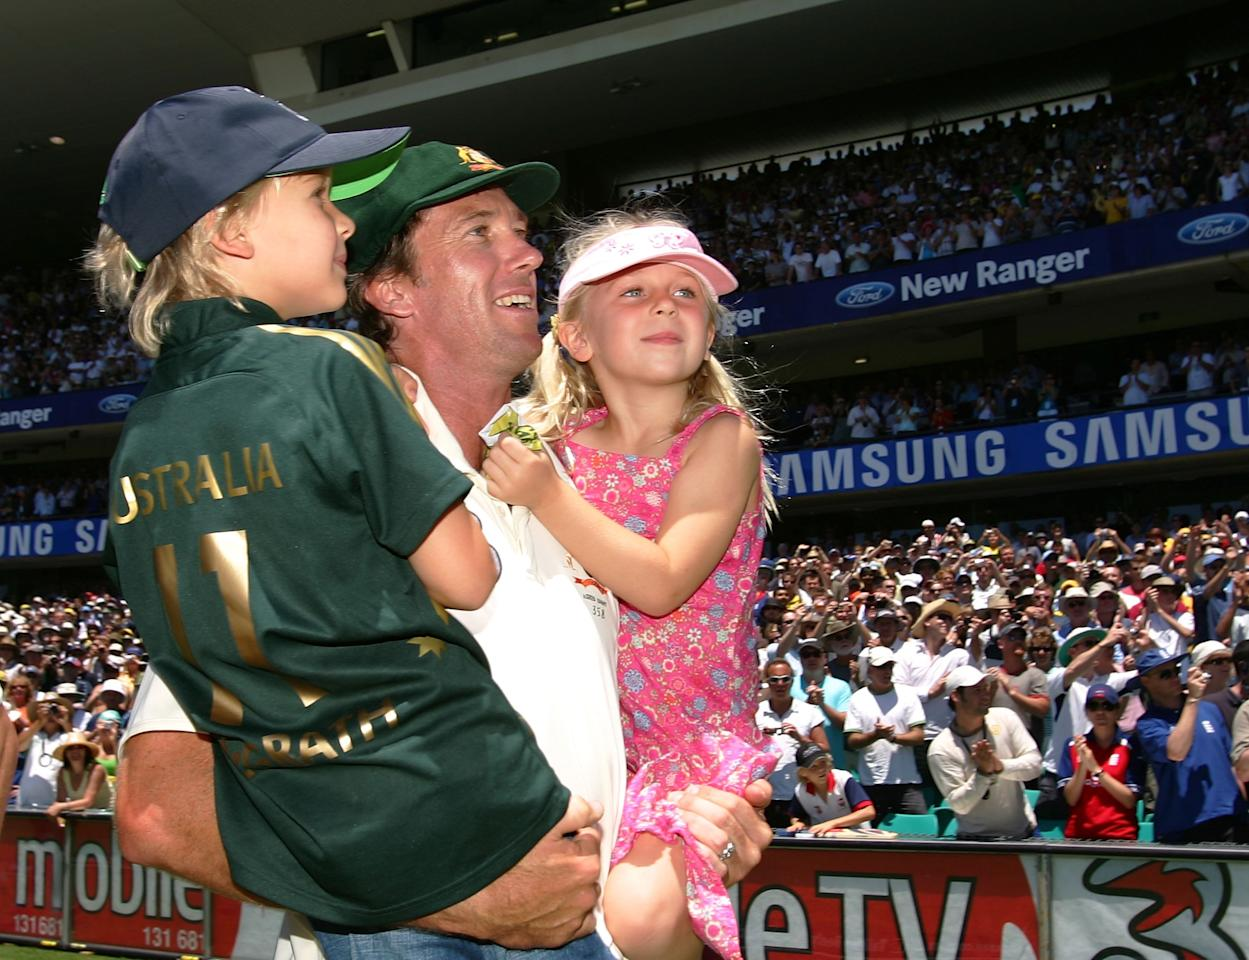 SYDNEY, AUSTRALIA - JANUARY 05:  Glenn McGrath of Australia walks with his children after winning the fifth ashes test on day four of the fifth Ashes Test Match between Australia and England at the Sydney Cricket Ground on January 5, 2007 in Sydney, Australia.  (Photo by Hamish Blair/Getty Images)